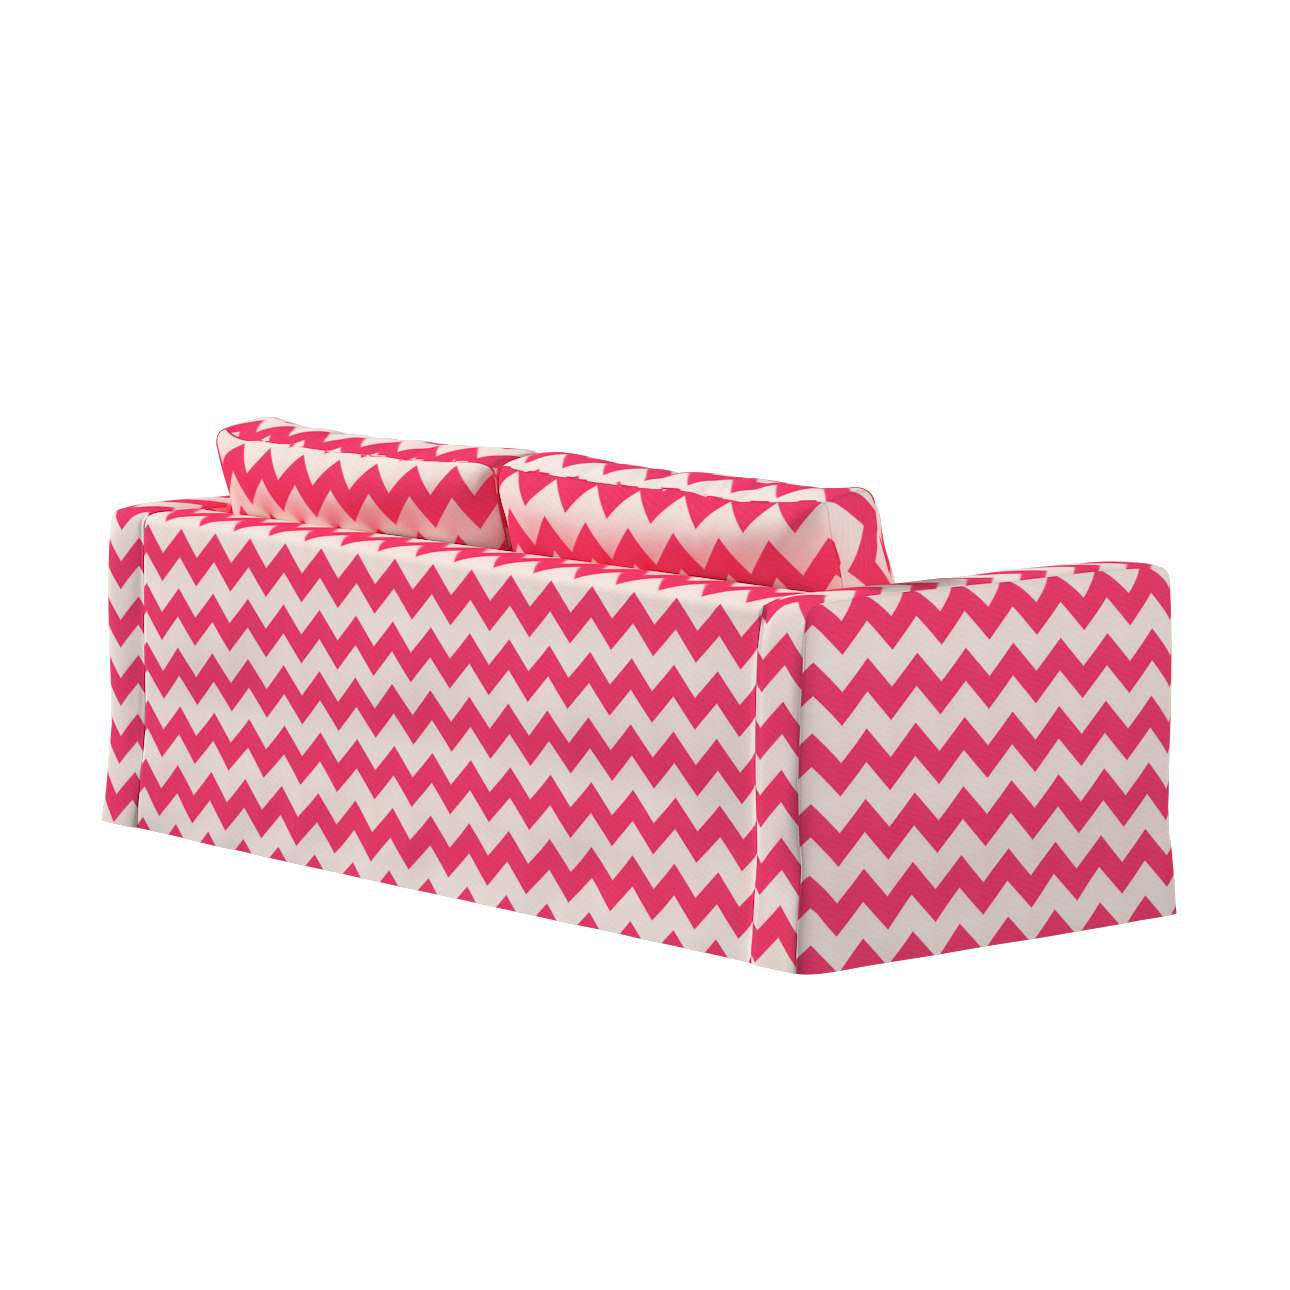 Floor length Karlstad 3-seater sofa cover in collection Comics/Geometrical, fabric: 135-00